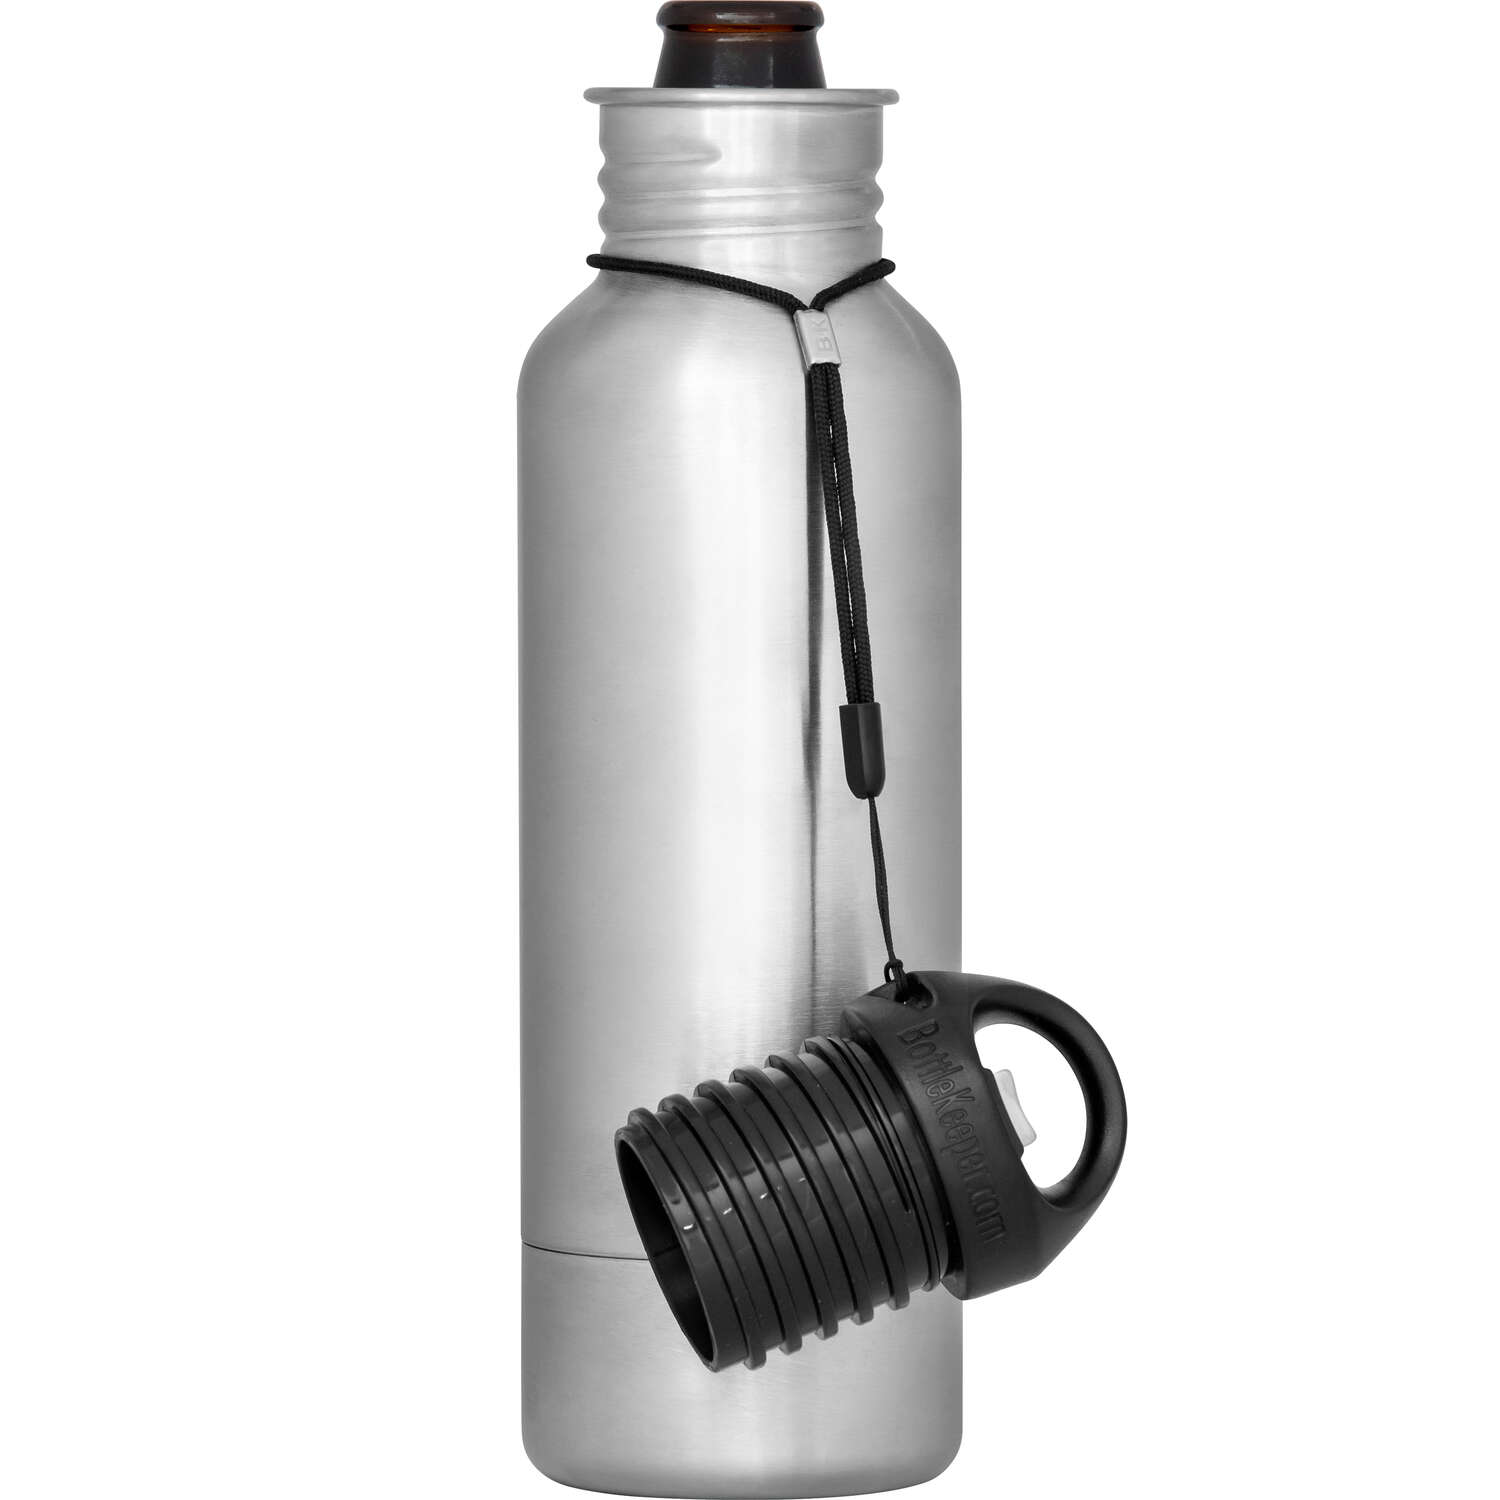 BottleKeeper  The Standard 2.0  Insulated Bottle Koozie  12 oz. Silver  1 pk